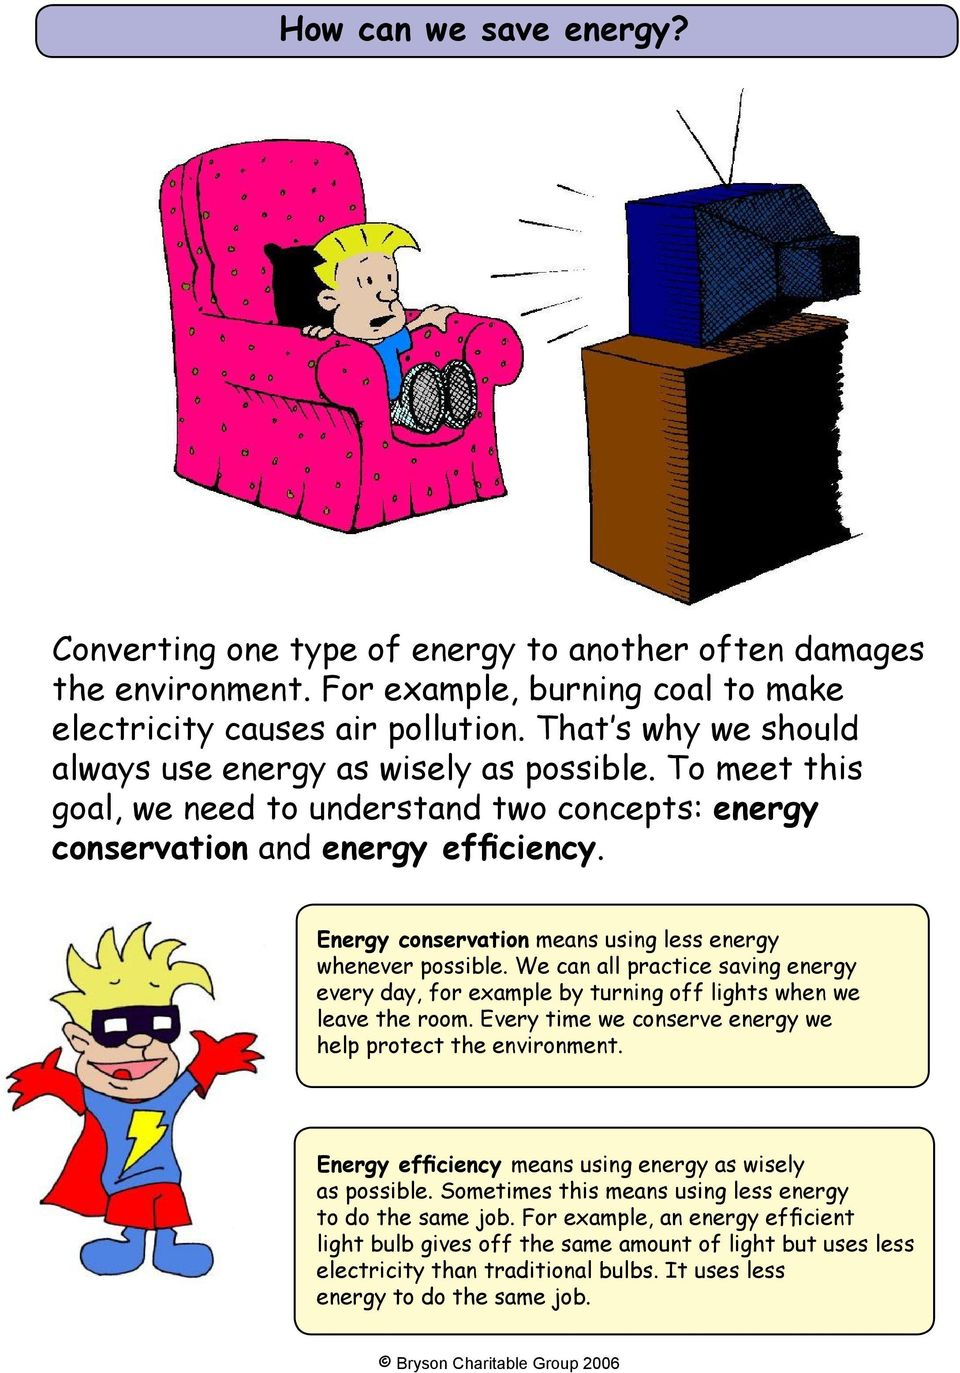 Energy conservation means using less energy whenever possible. We can all practice saving energy every day, for example by turning off lights when we leave the room.